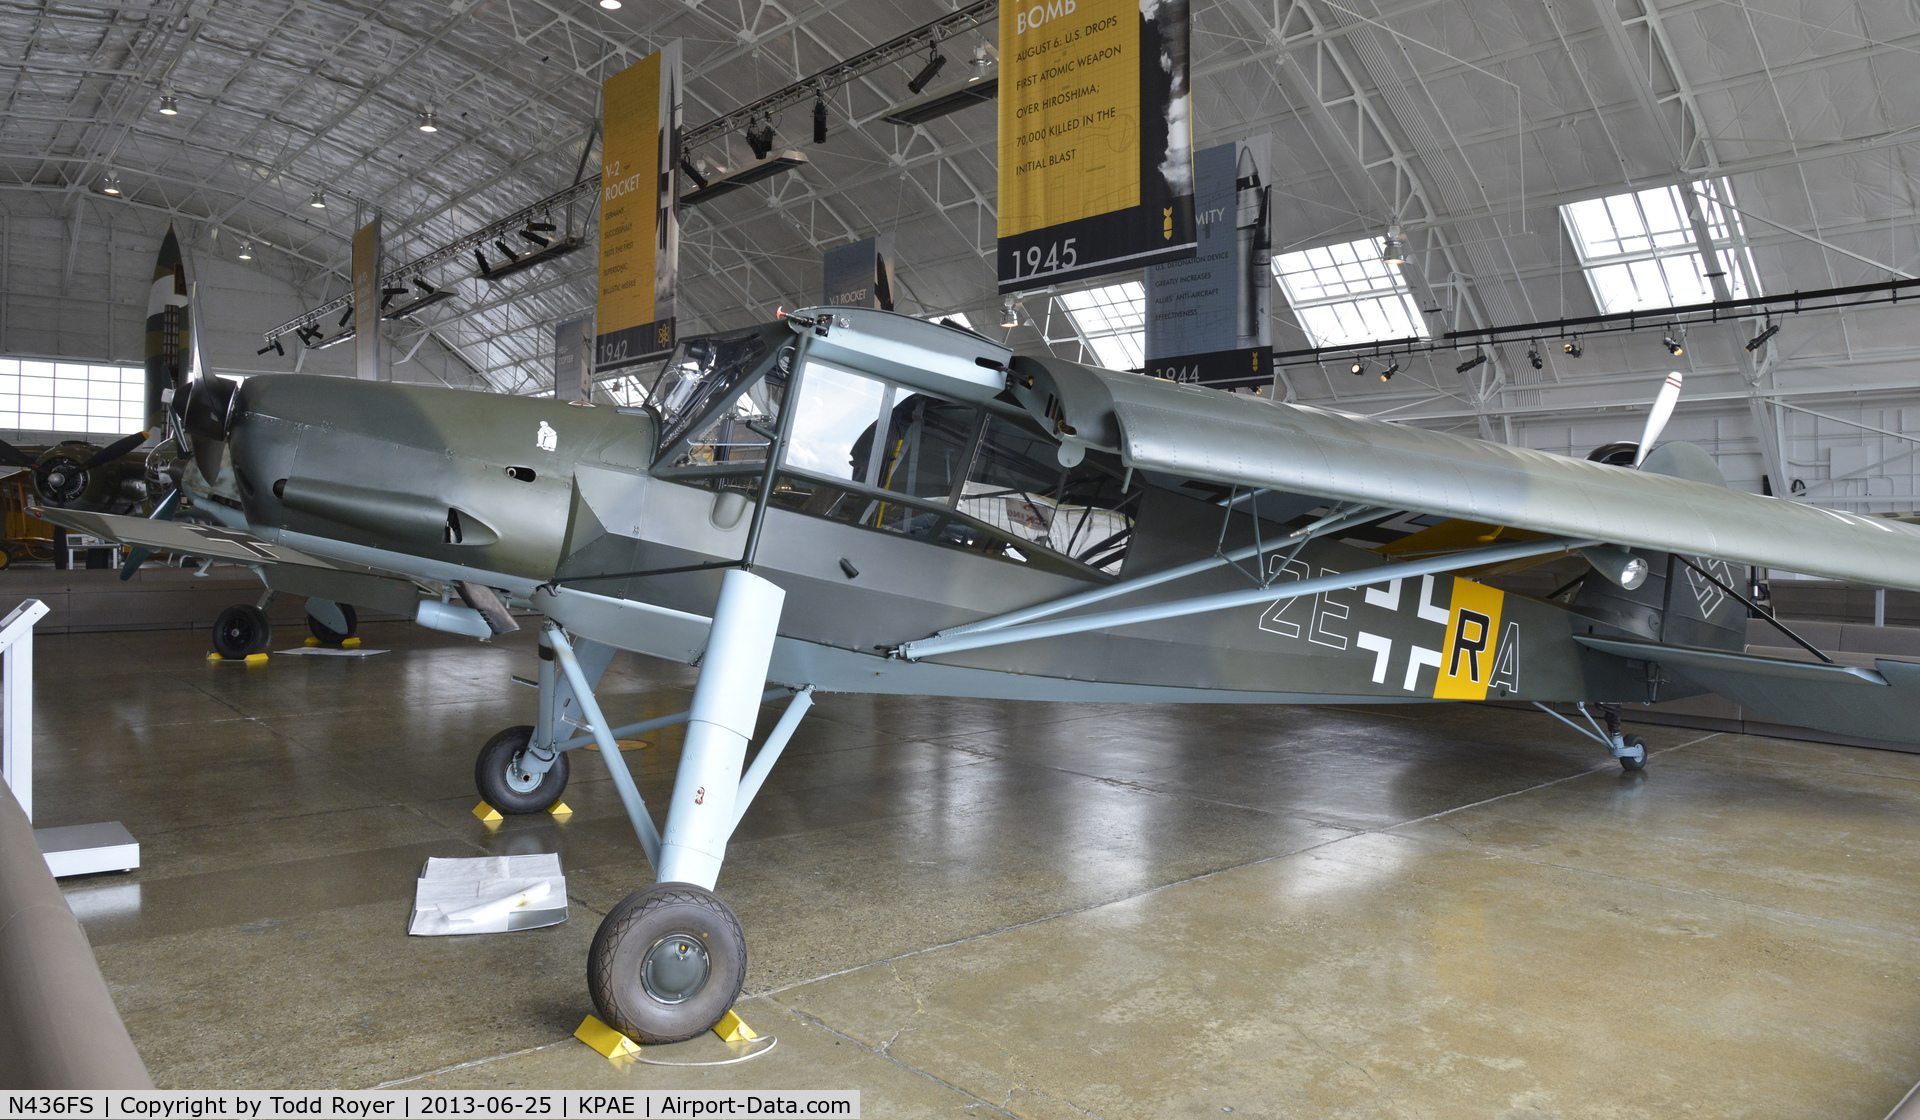 N436FS, Fieseler Fi-156C-2 Storch C/N 4362, Part of the Flying Heritage Collection